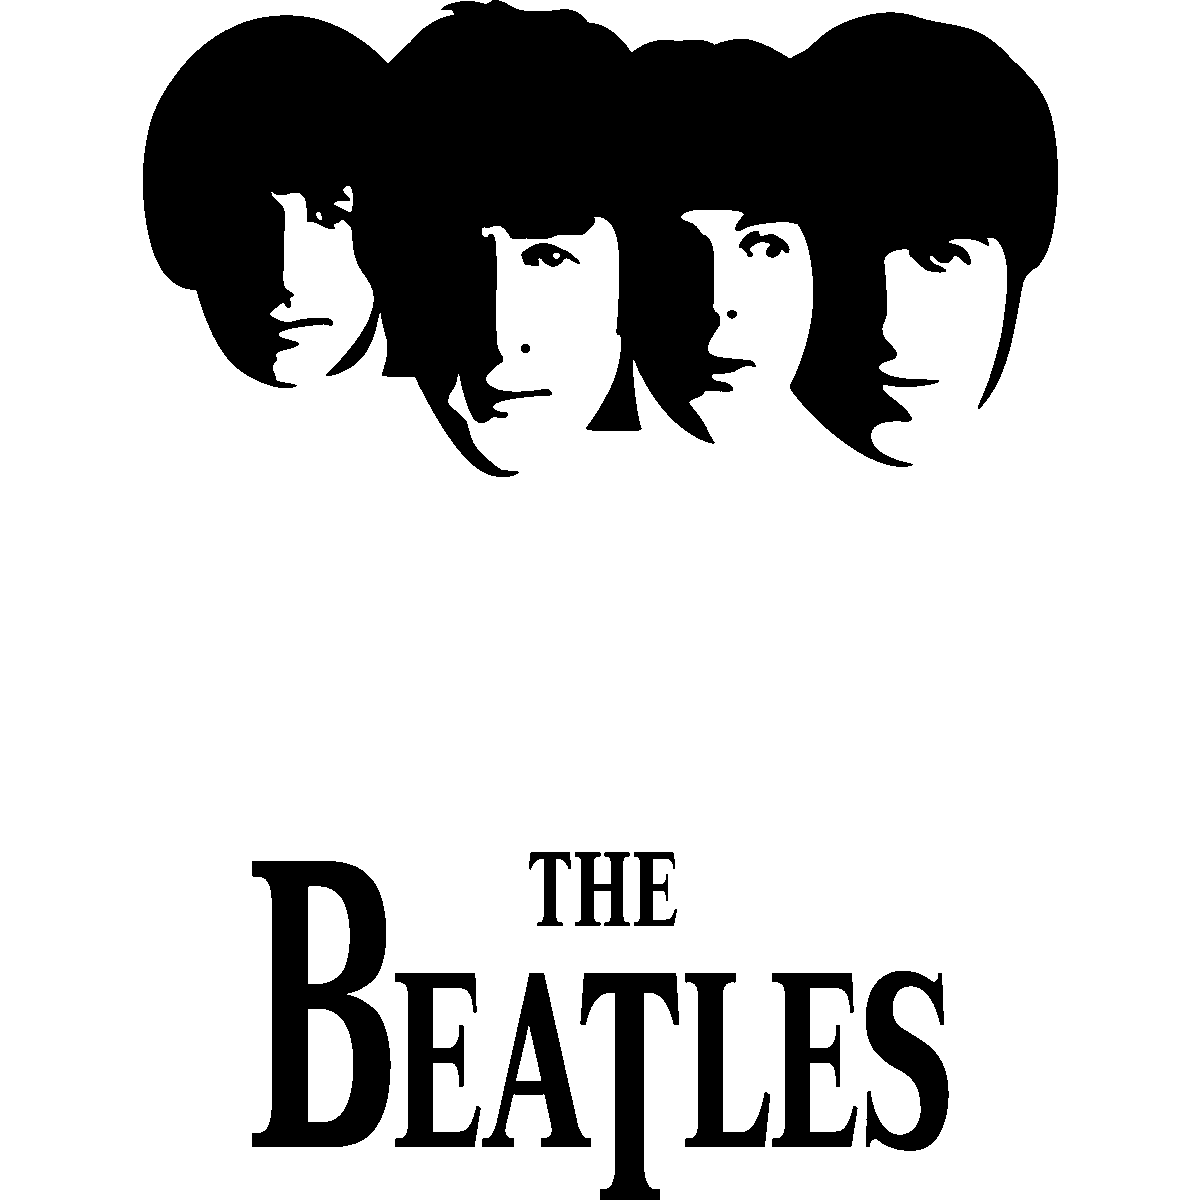 Beatles white album symbolism to see dissertation